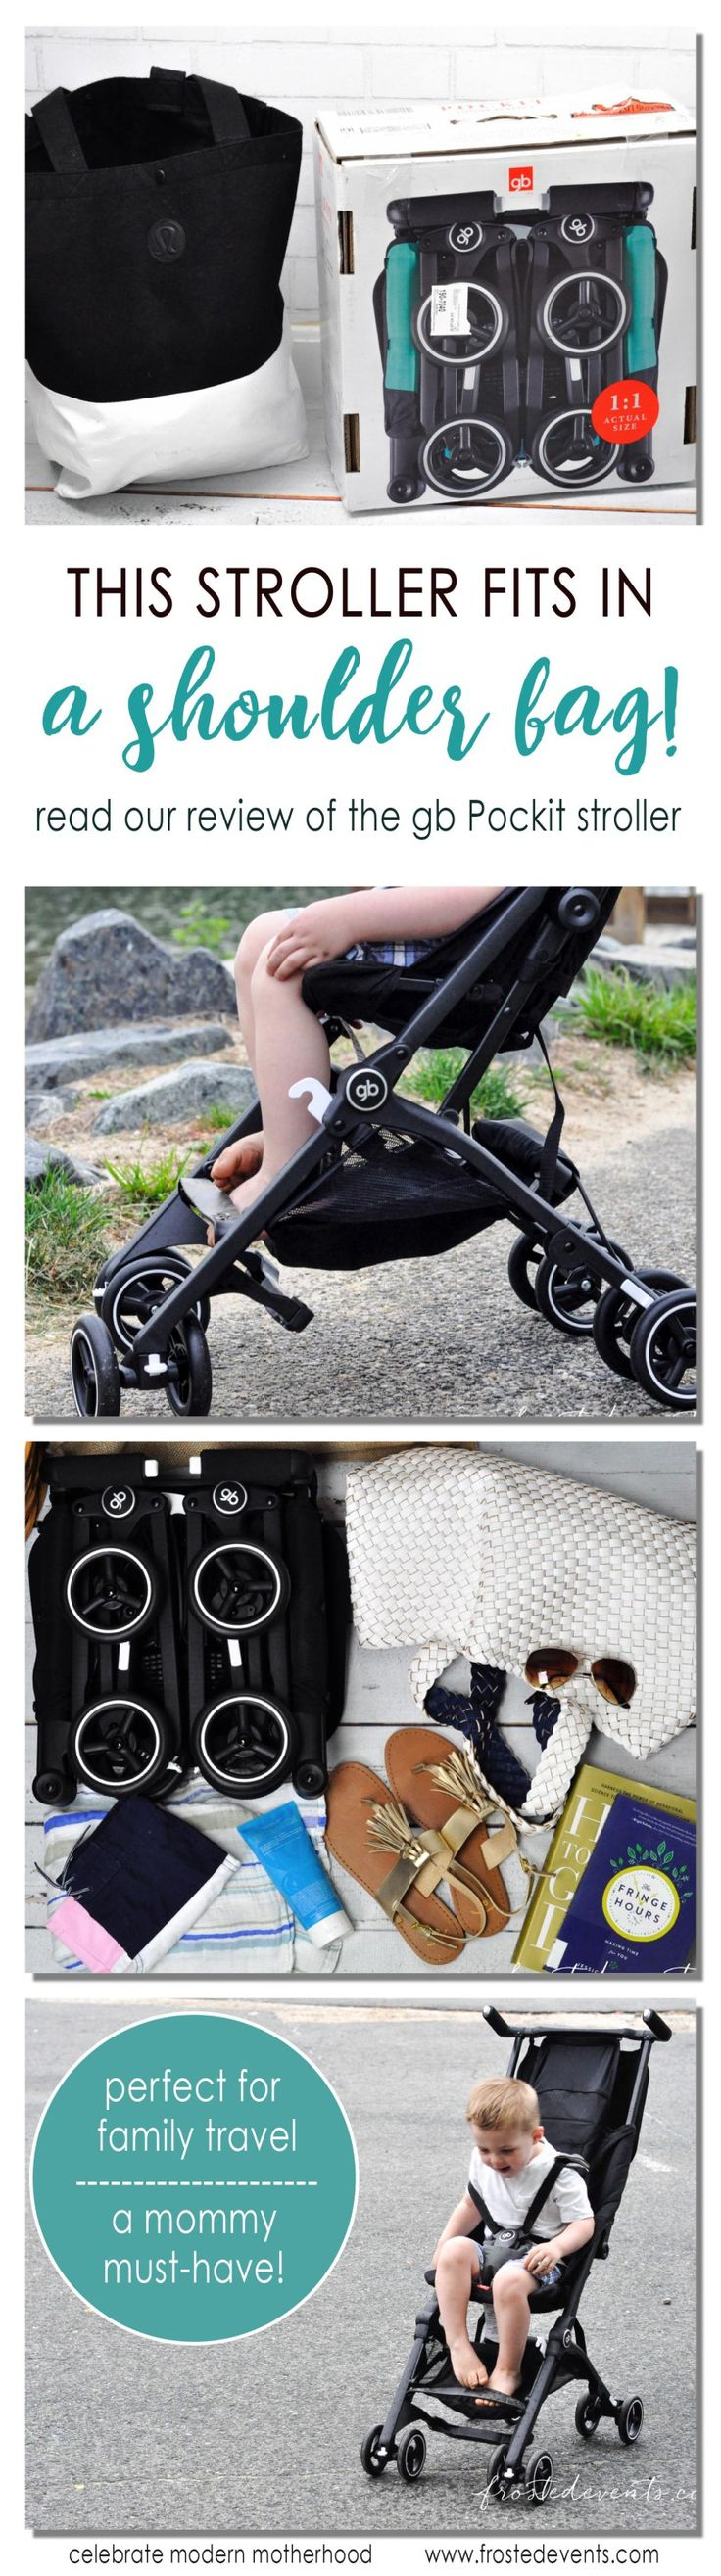 A Stroller That Fits In Your Bag! The gb Pockit Stroller